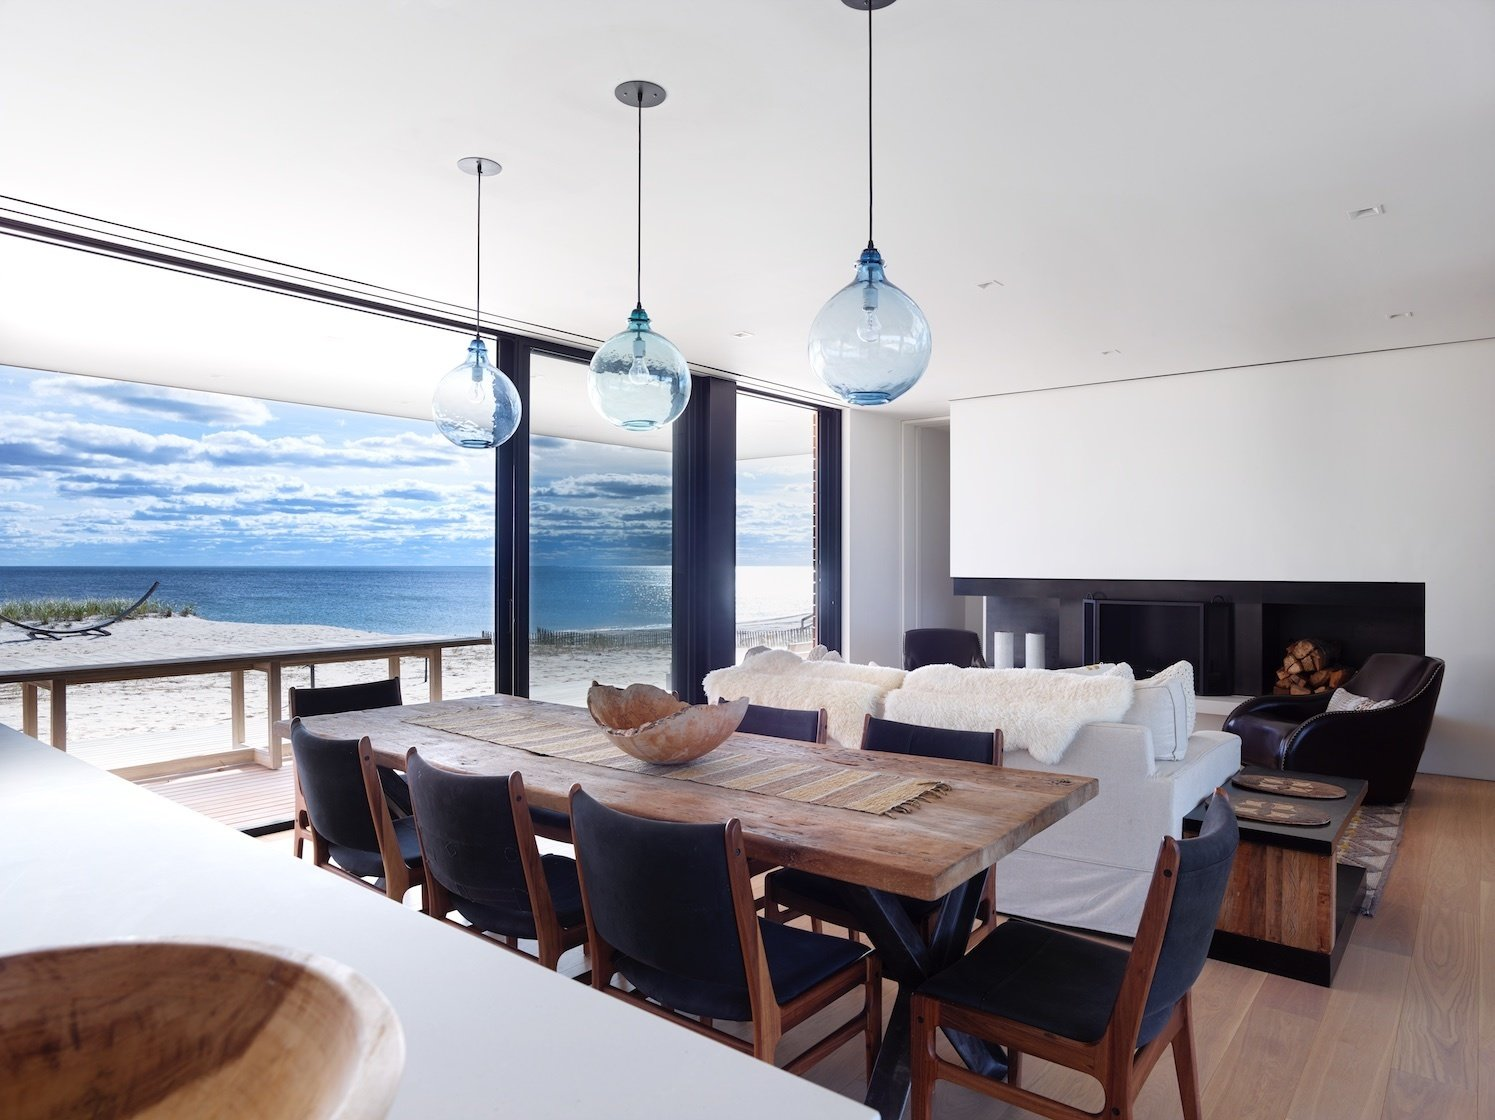 Dining and living room overlooking ocean